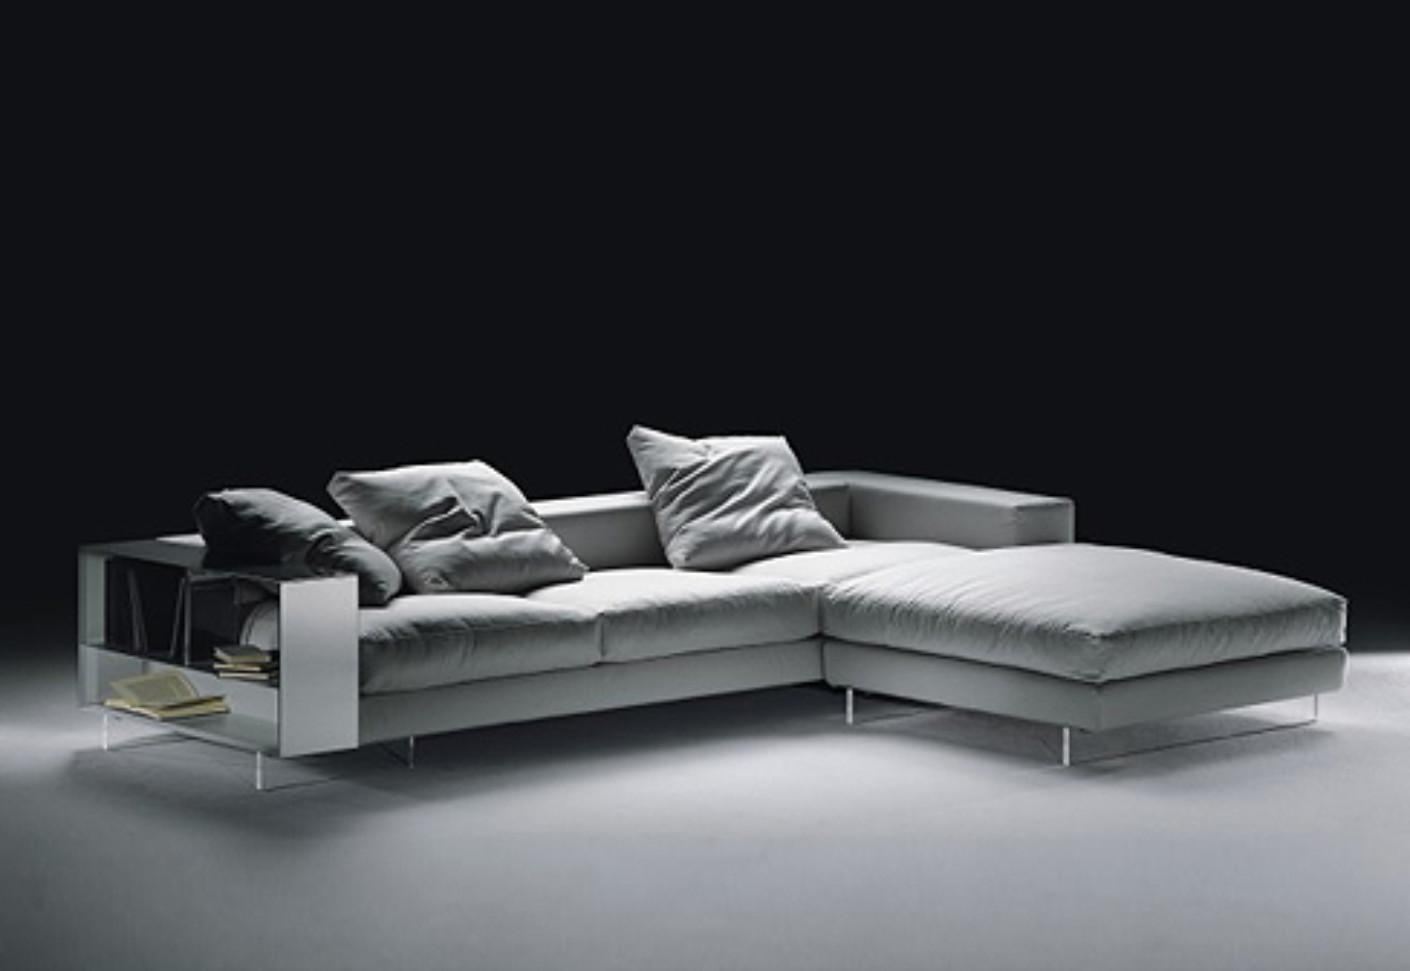 Lightpiece Sofaflexform | Stylepark Pertaining To Flexform Sofas (View 15 of 20)